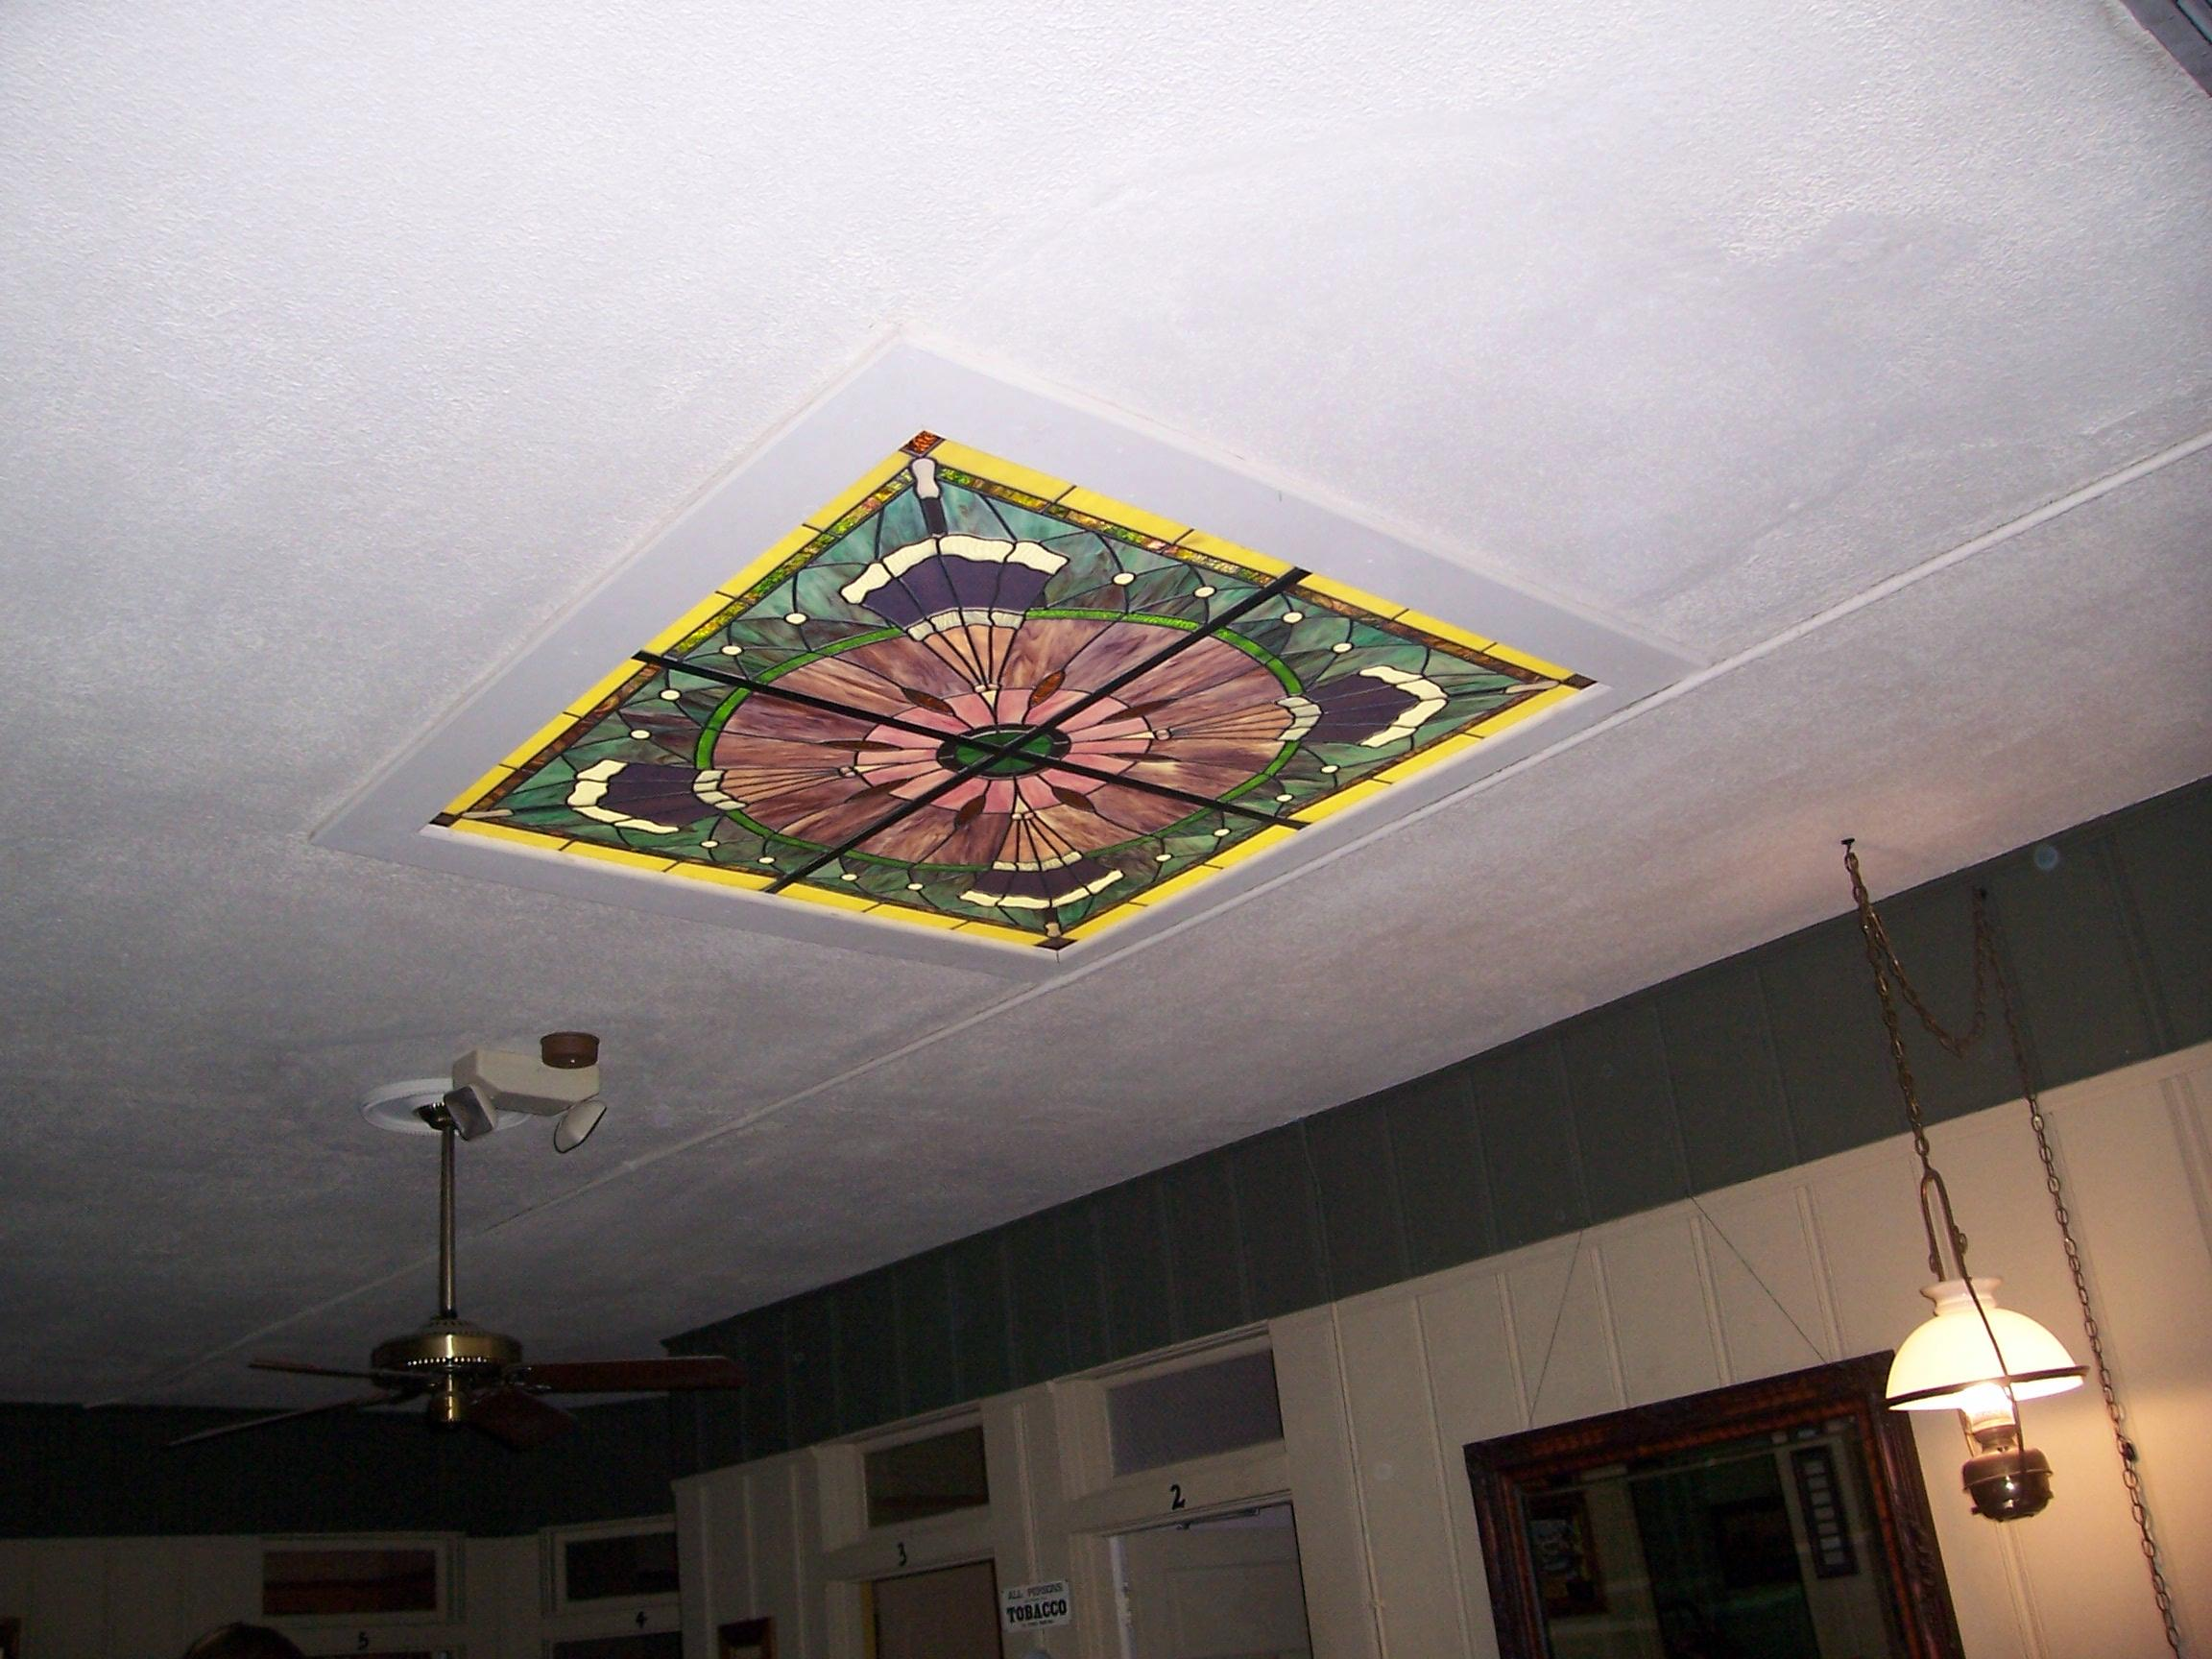 Stained glass in the ceiling